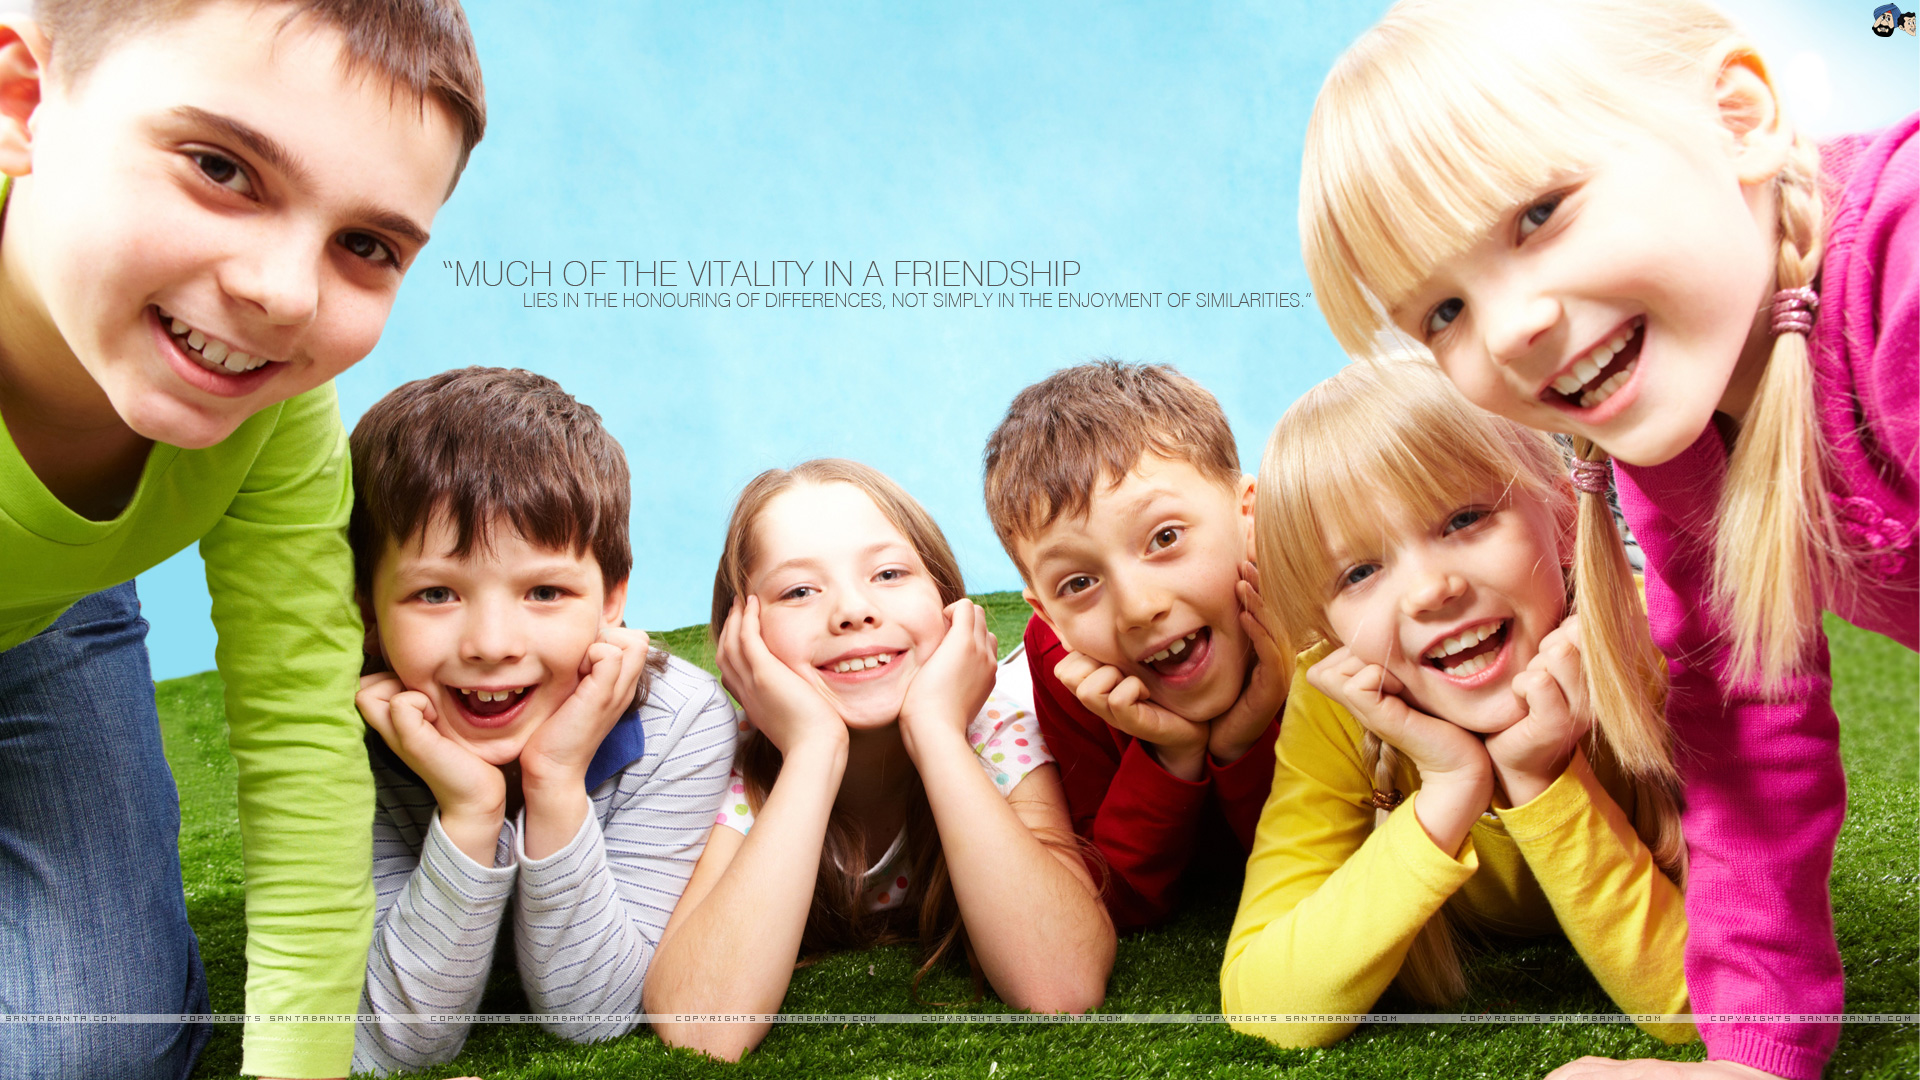 Happy-Friendship-Day-French-language-Quotes-messages-for-Friendship-Day 2014